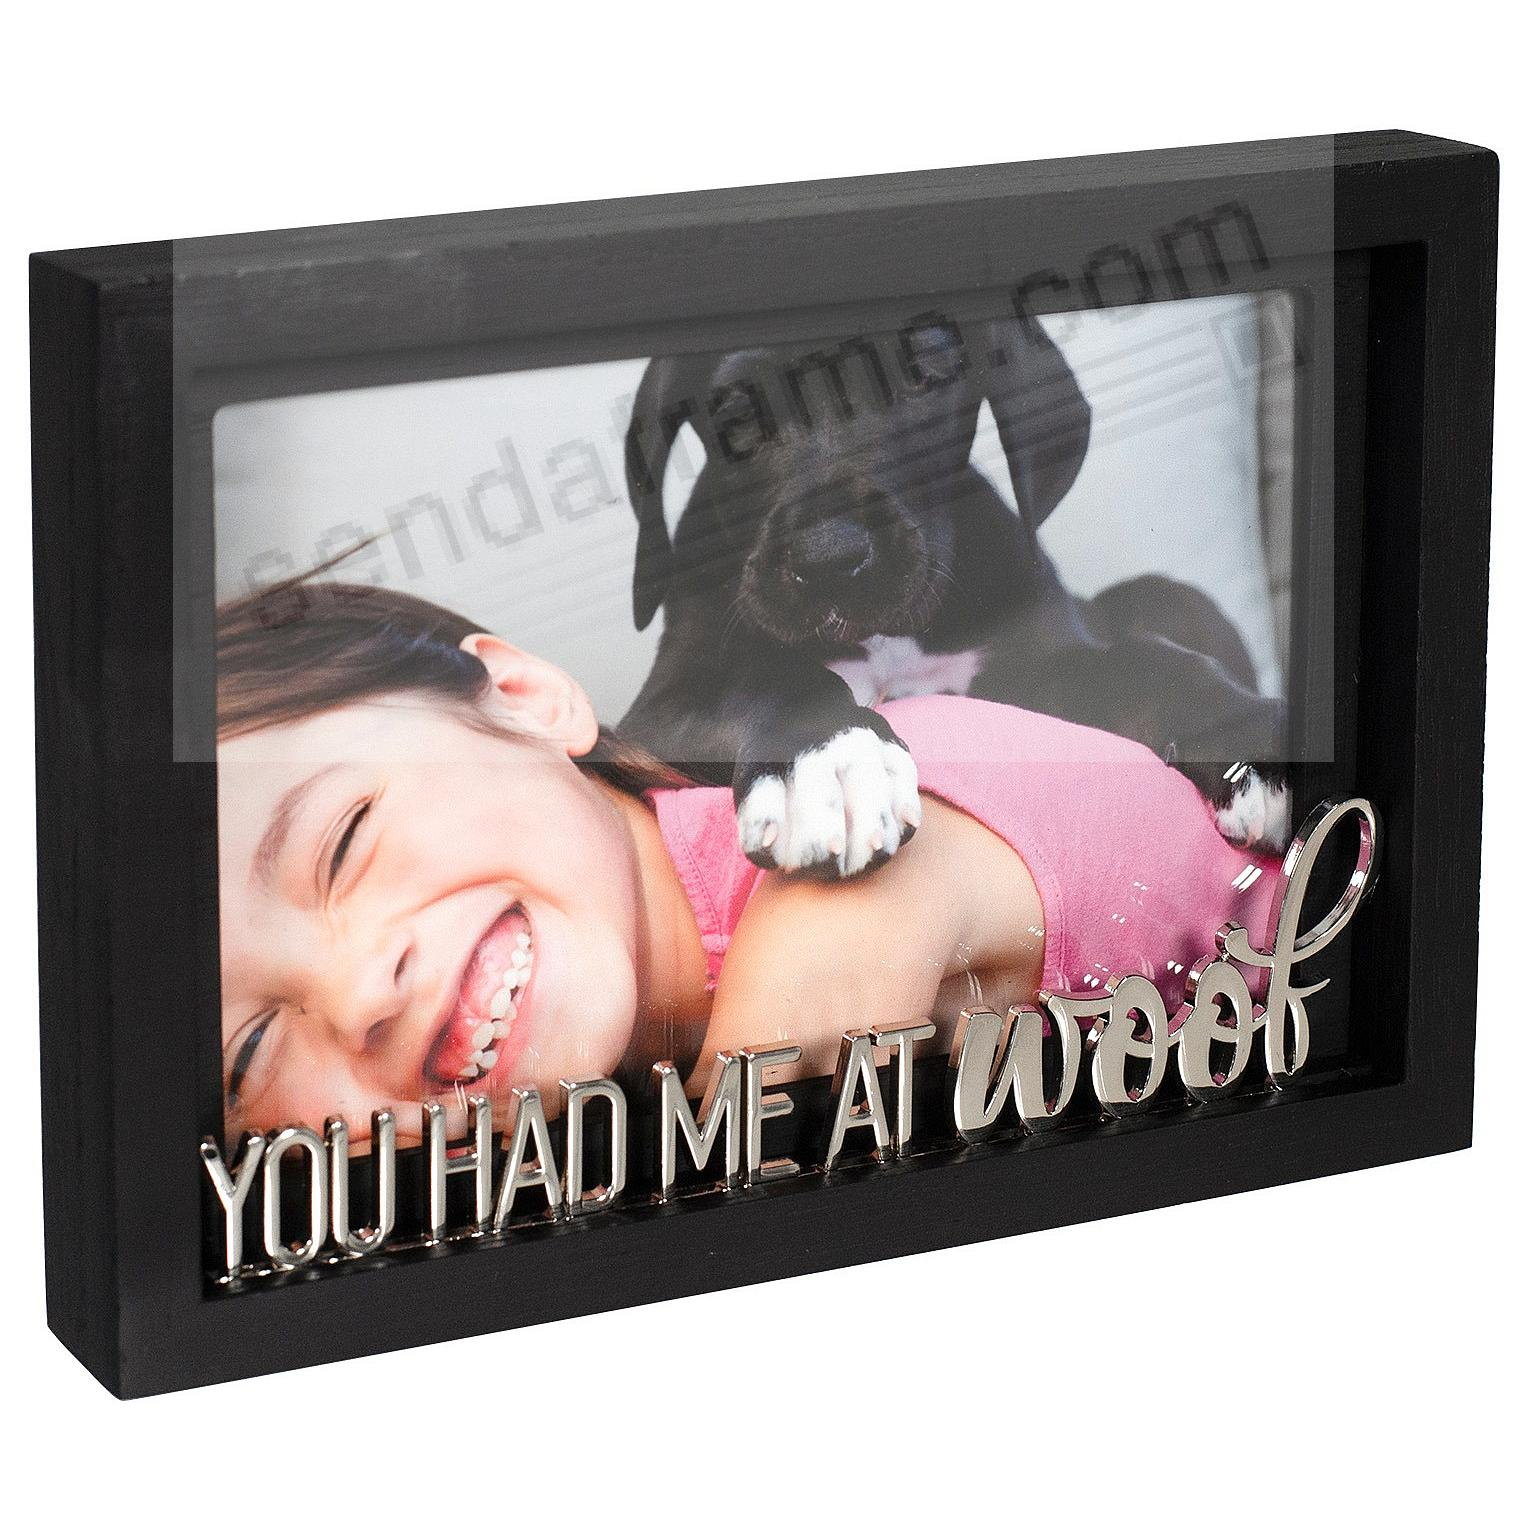 YOU HAD ME AT WOOF 4x6 frame by Malden®